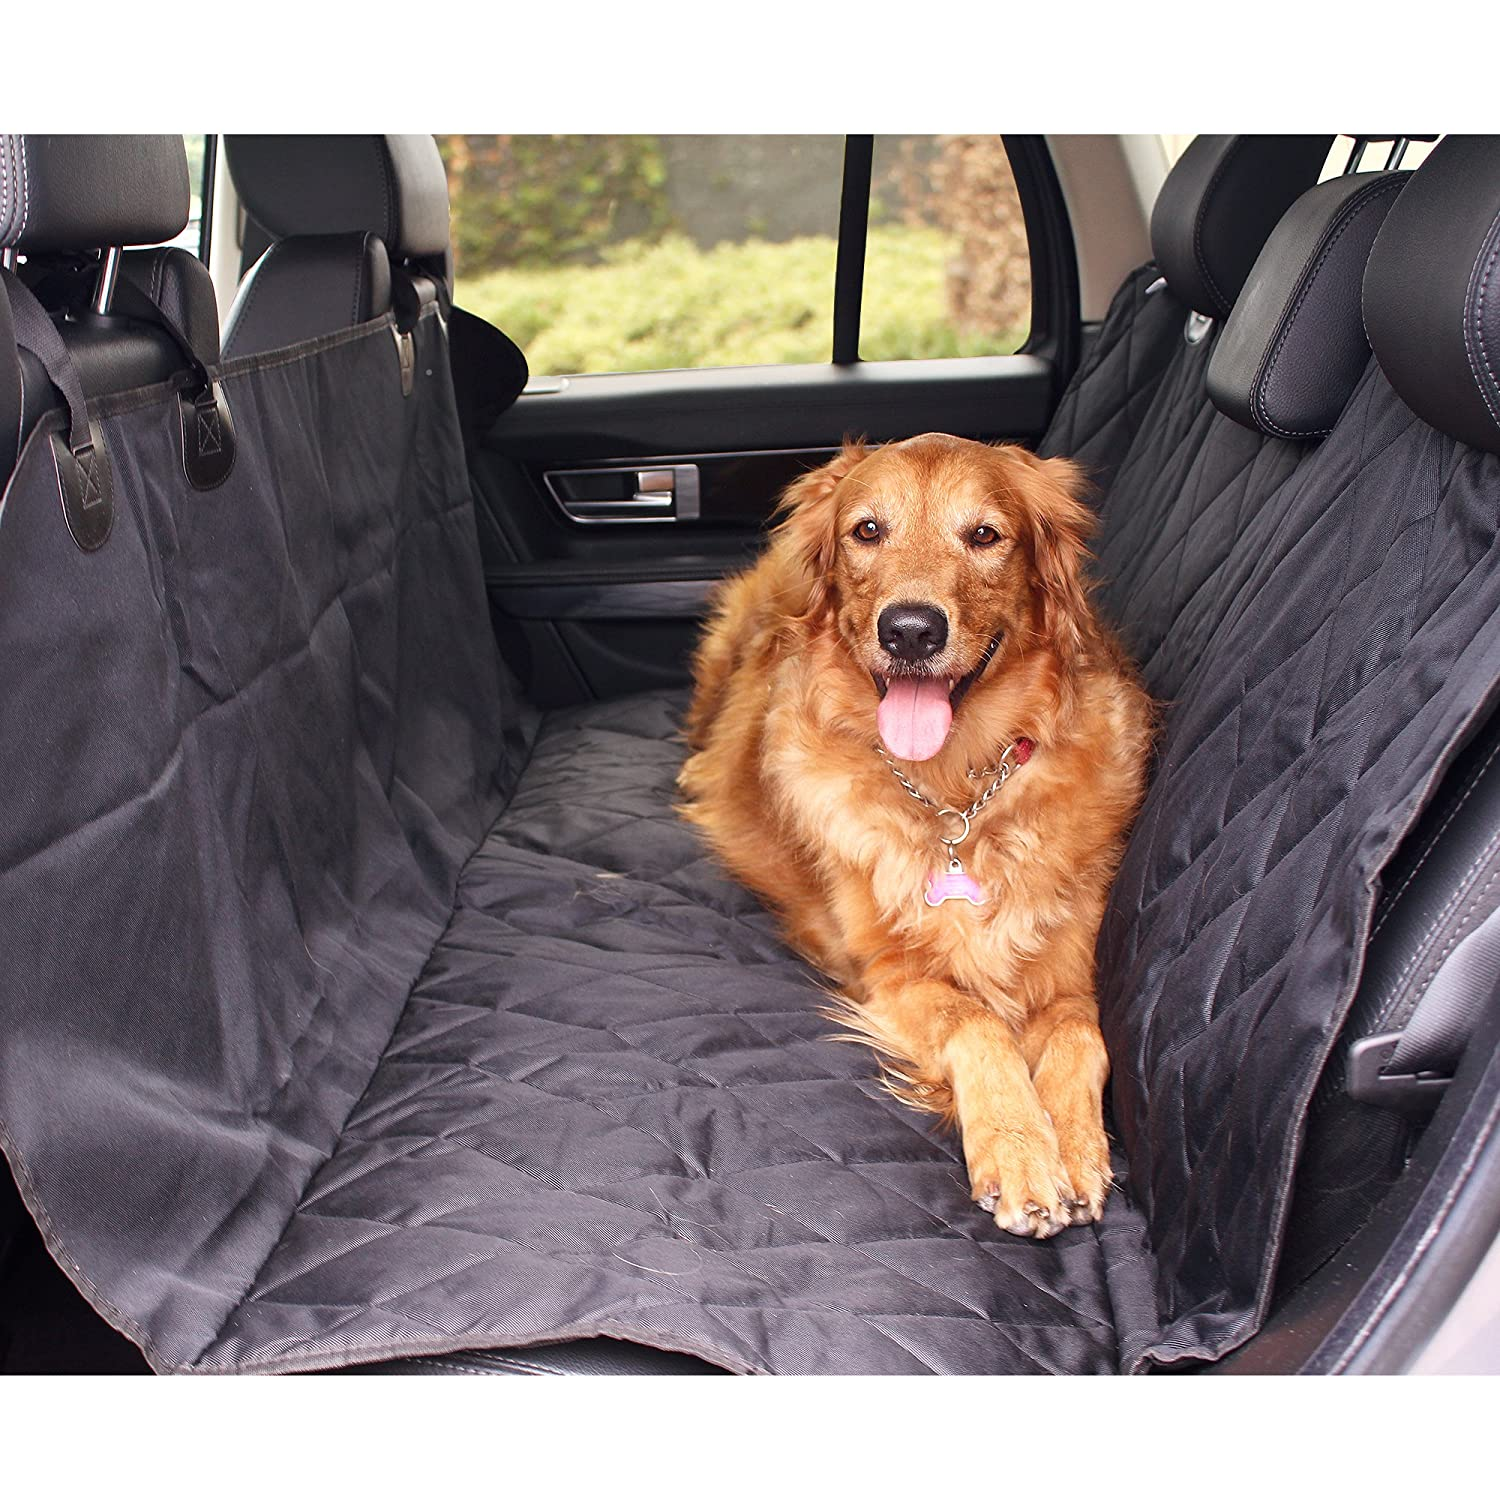 A golden retriever lies in the back seat of a car.